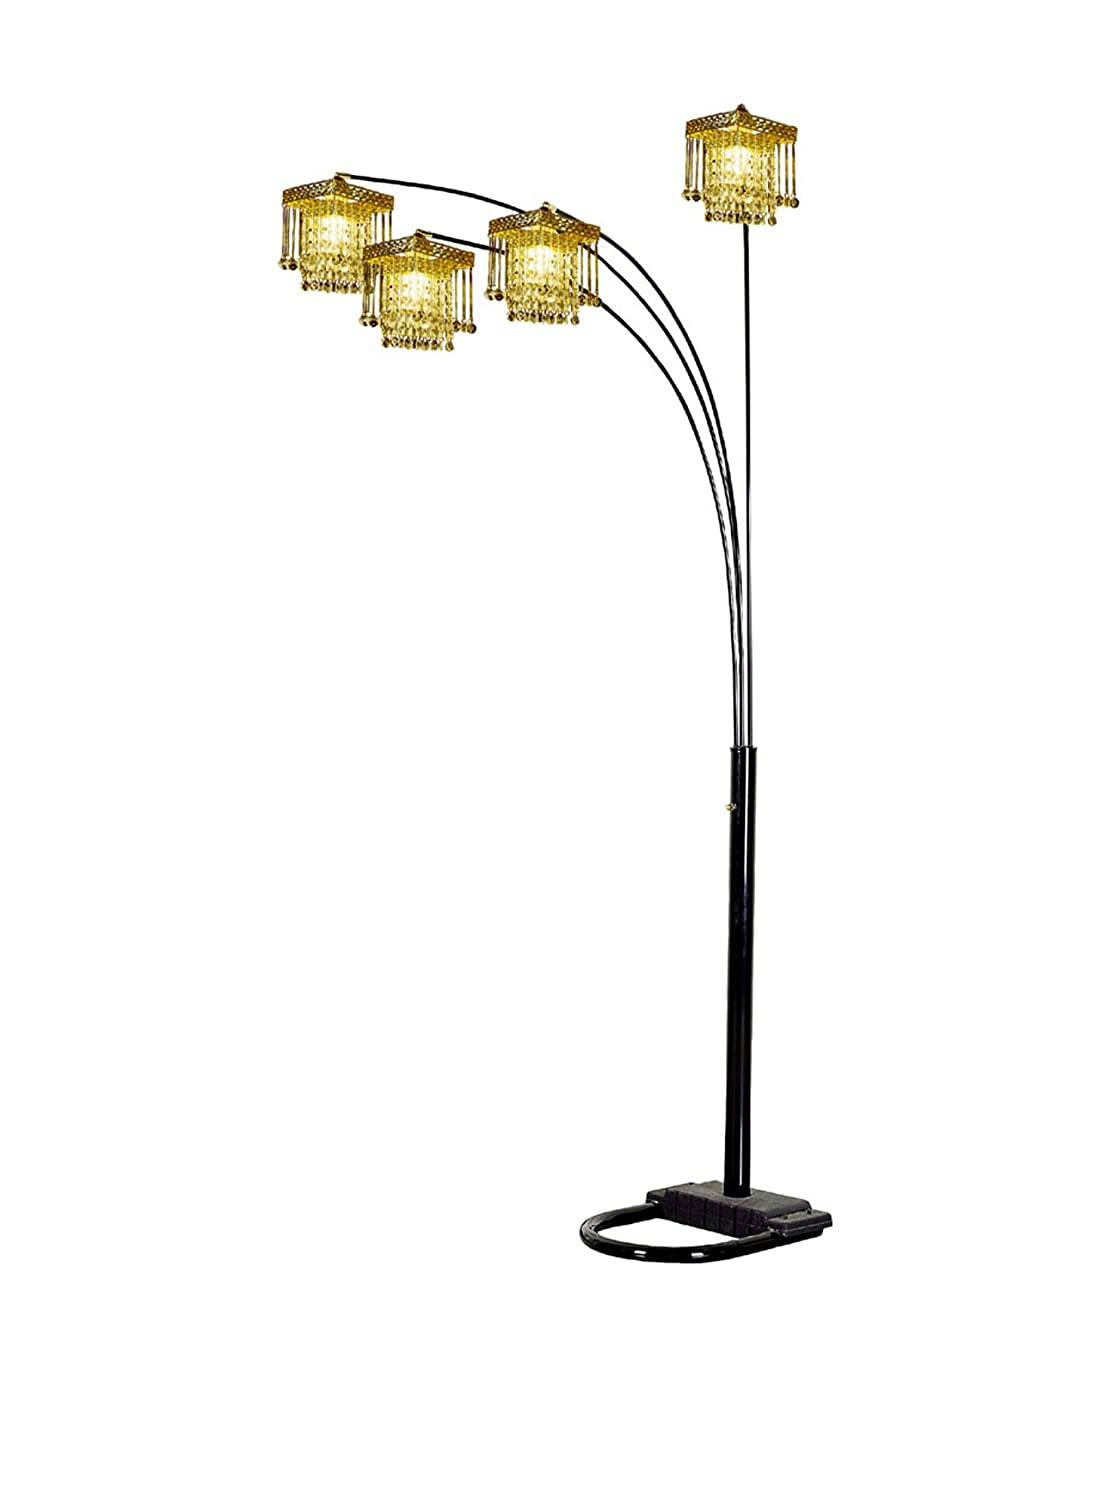 84 Tall Metal Floor Lamp with Black finish and 4 Arch Arms, Crystal Chandelier Design